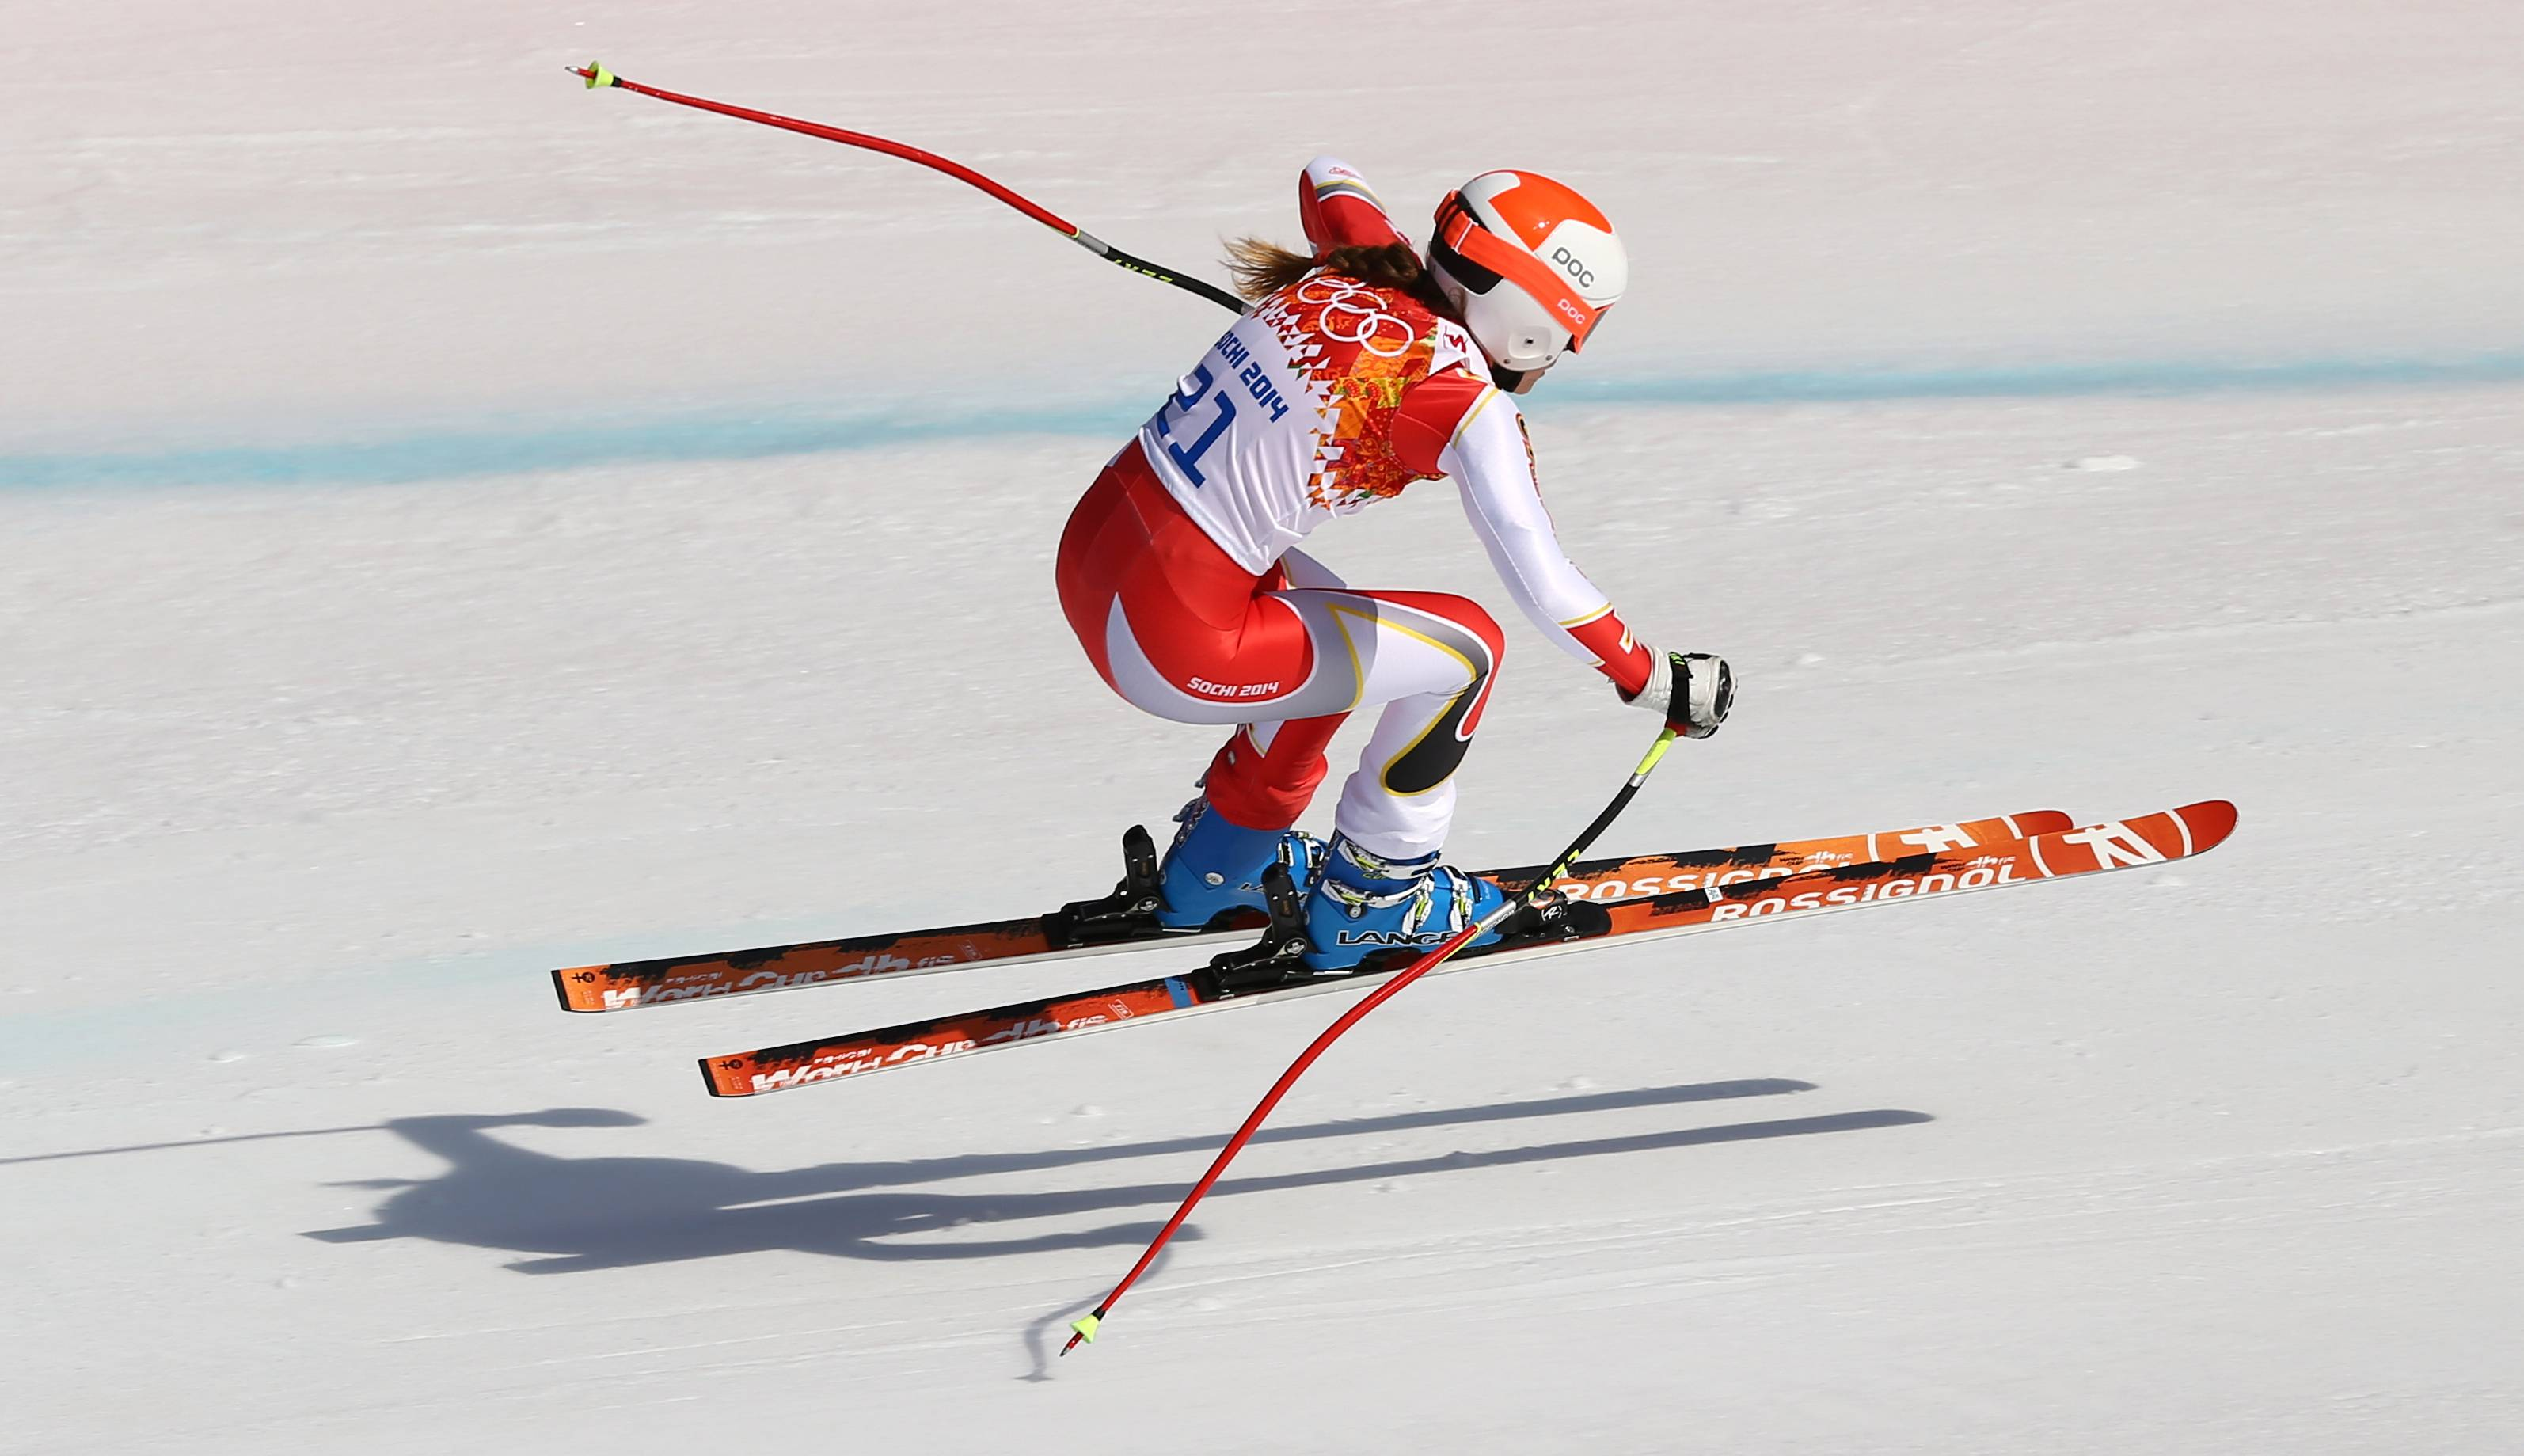 Canada's Marie-Michele Gagnon makes a jump during the downhill portion of the women's supercombined.